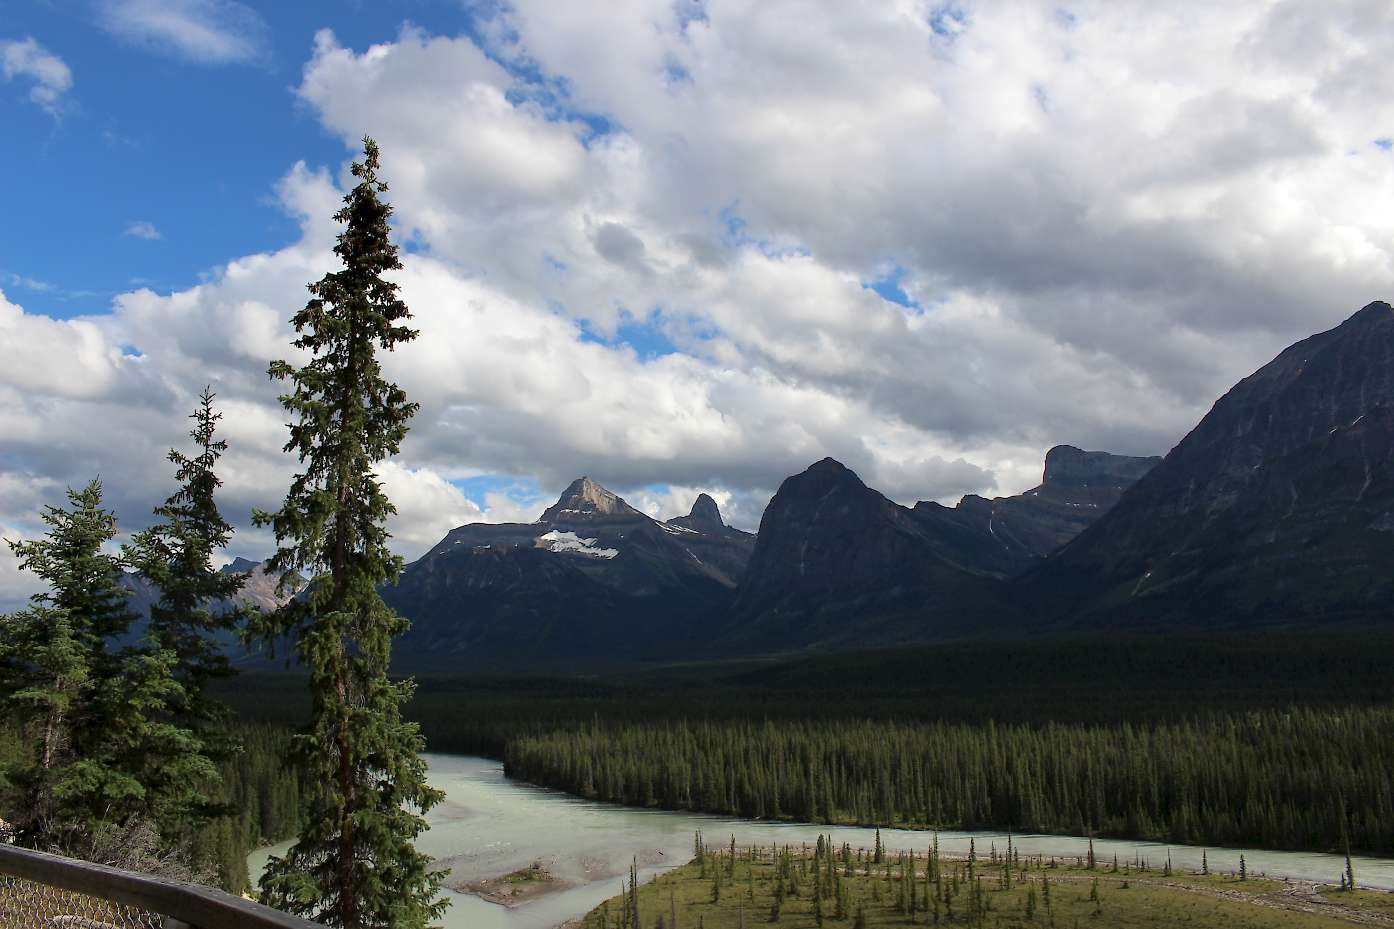 Typical views along the Icefields Parkway.